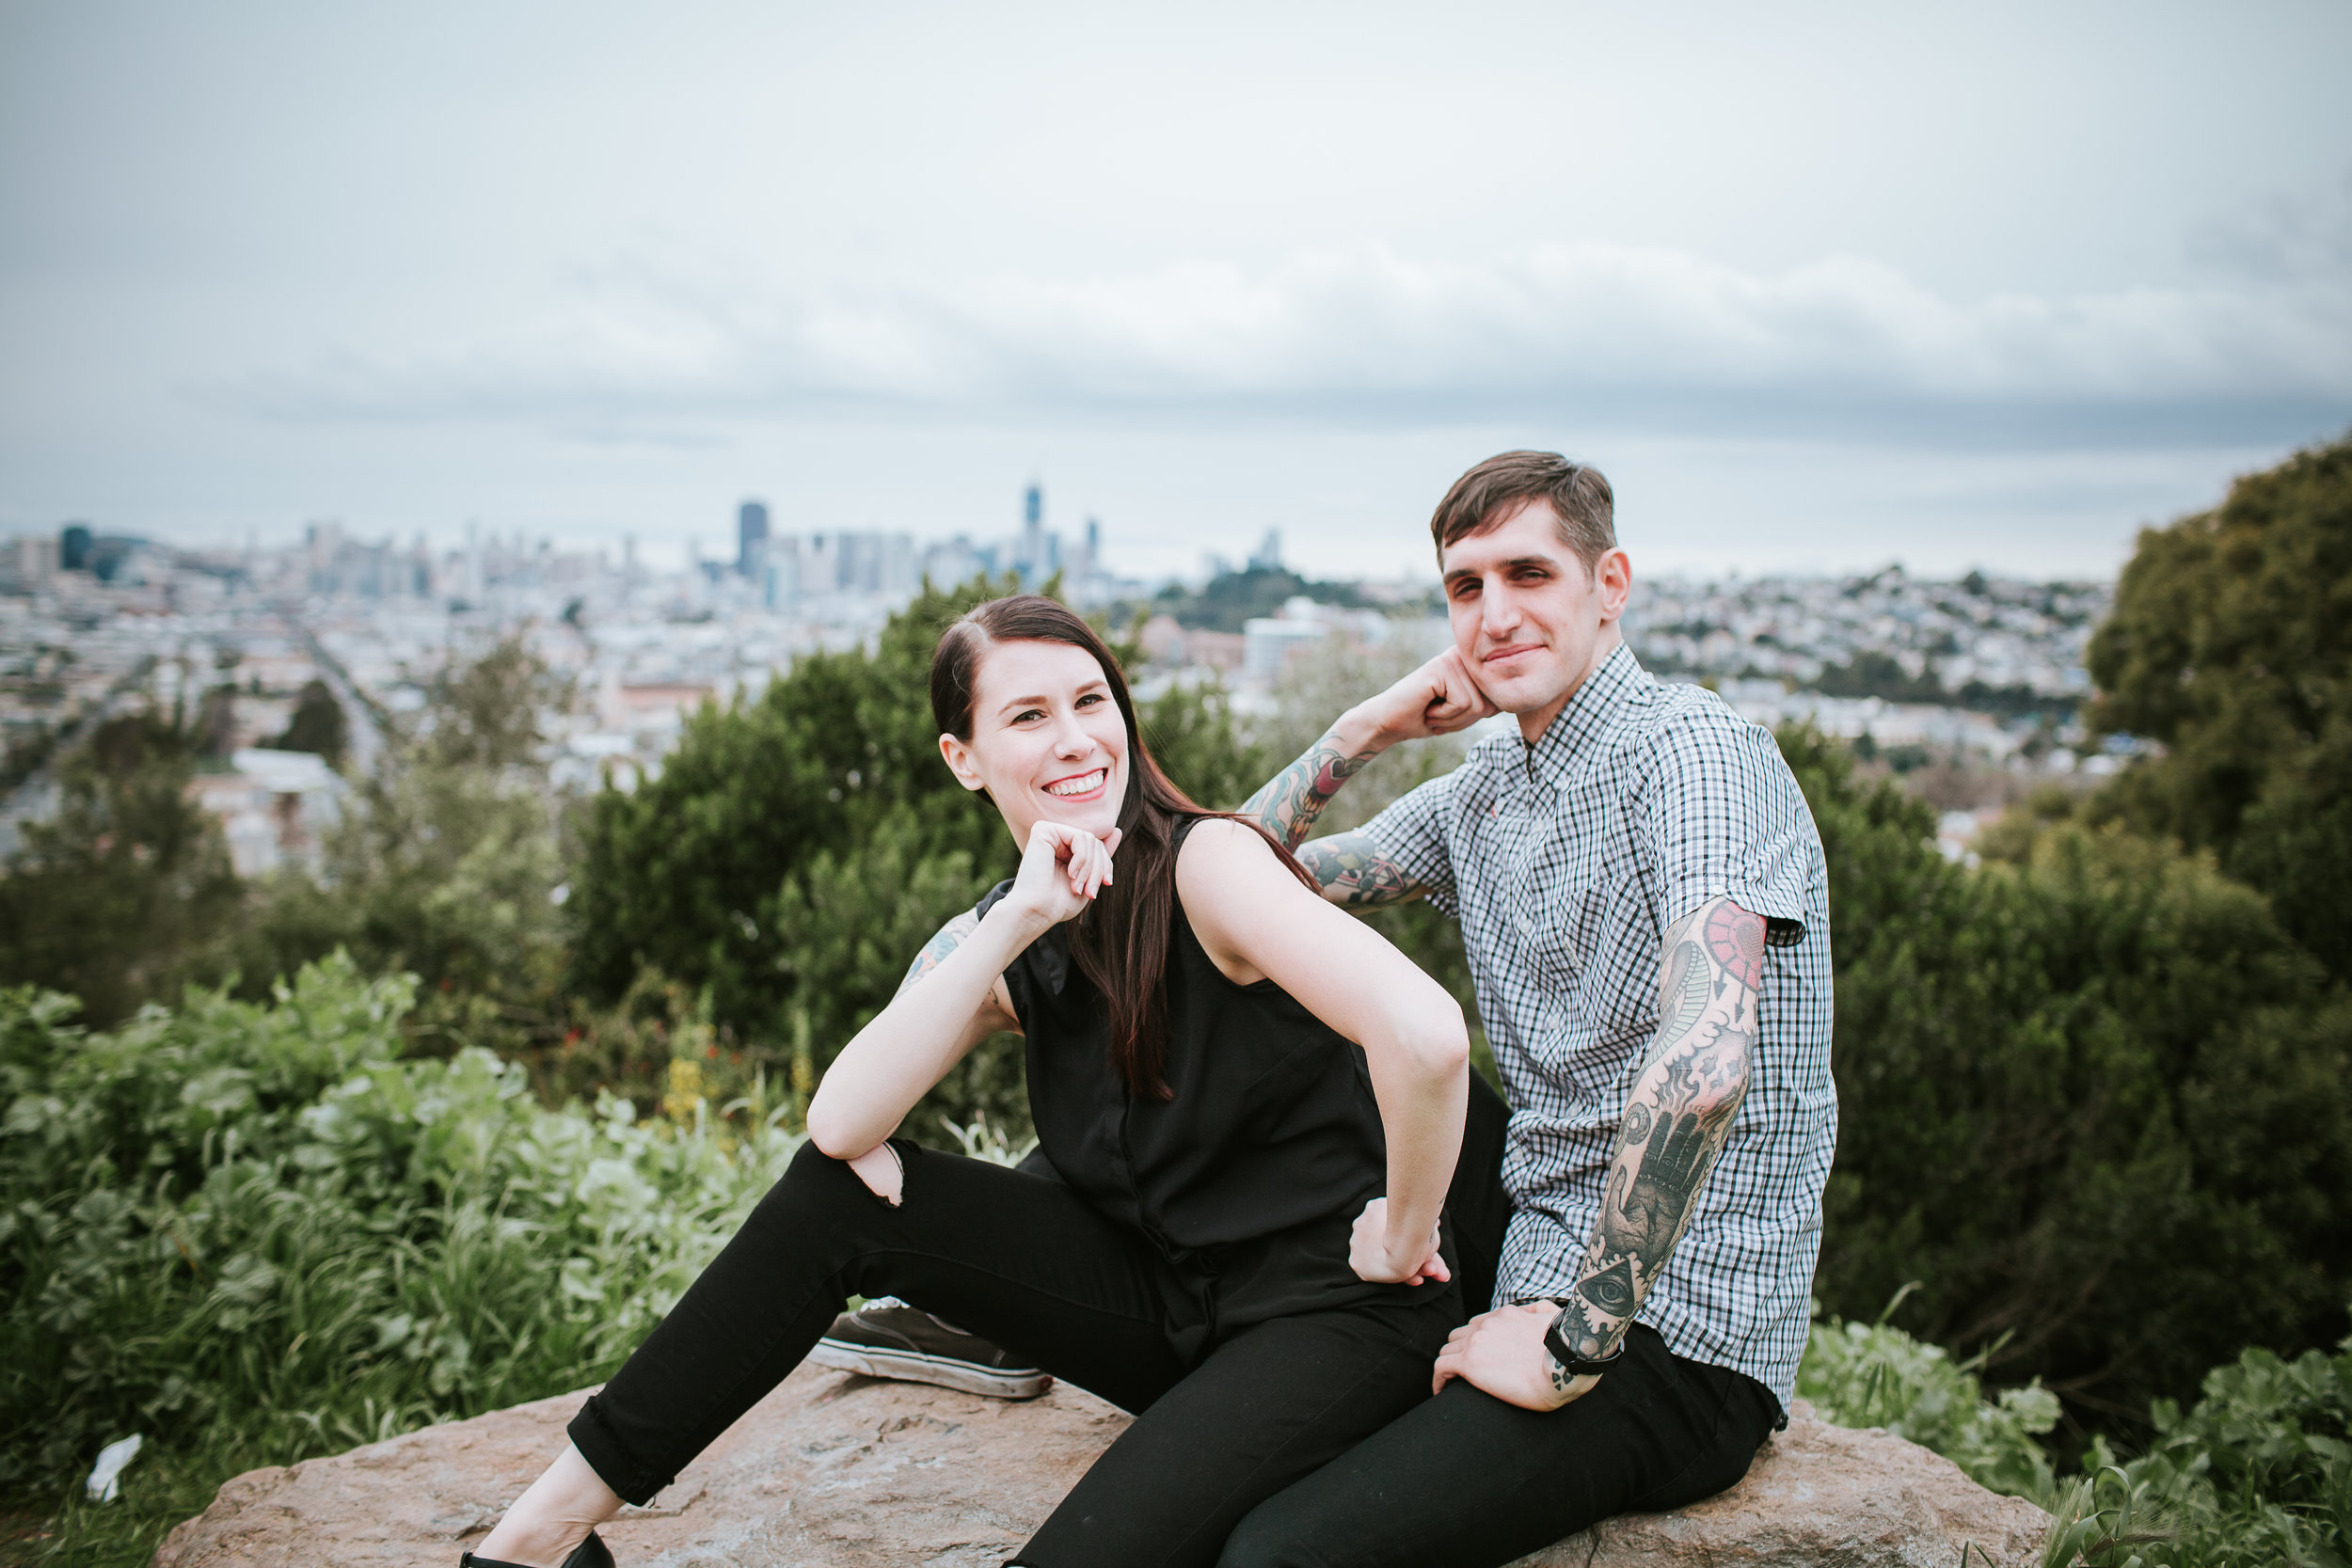 Nikki.Steven.san francisco. engagement. bernal heights dolores mission district-58.jpg